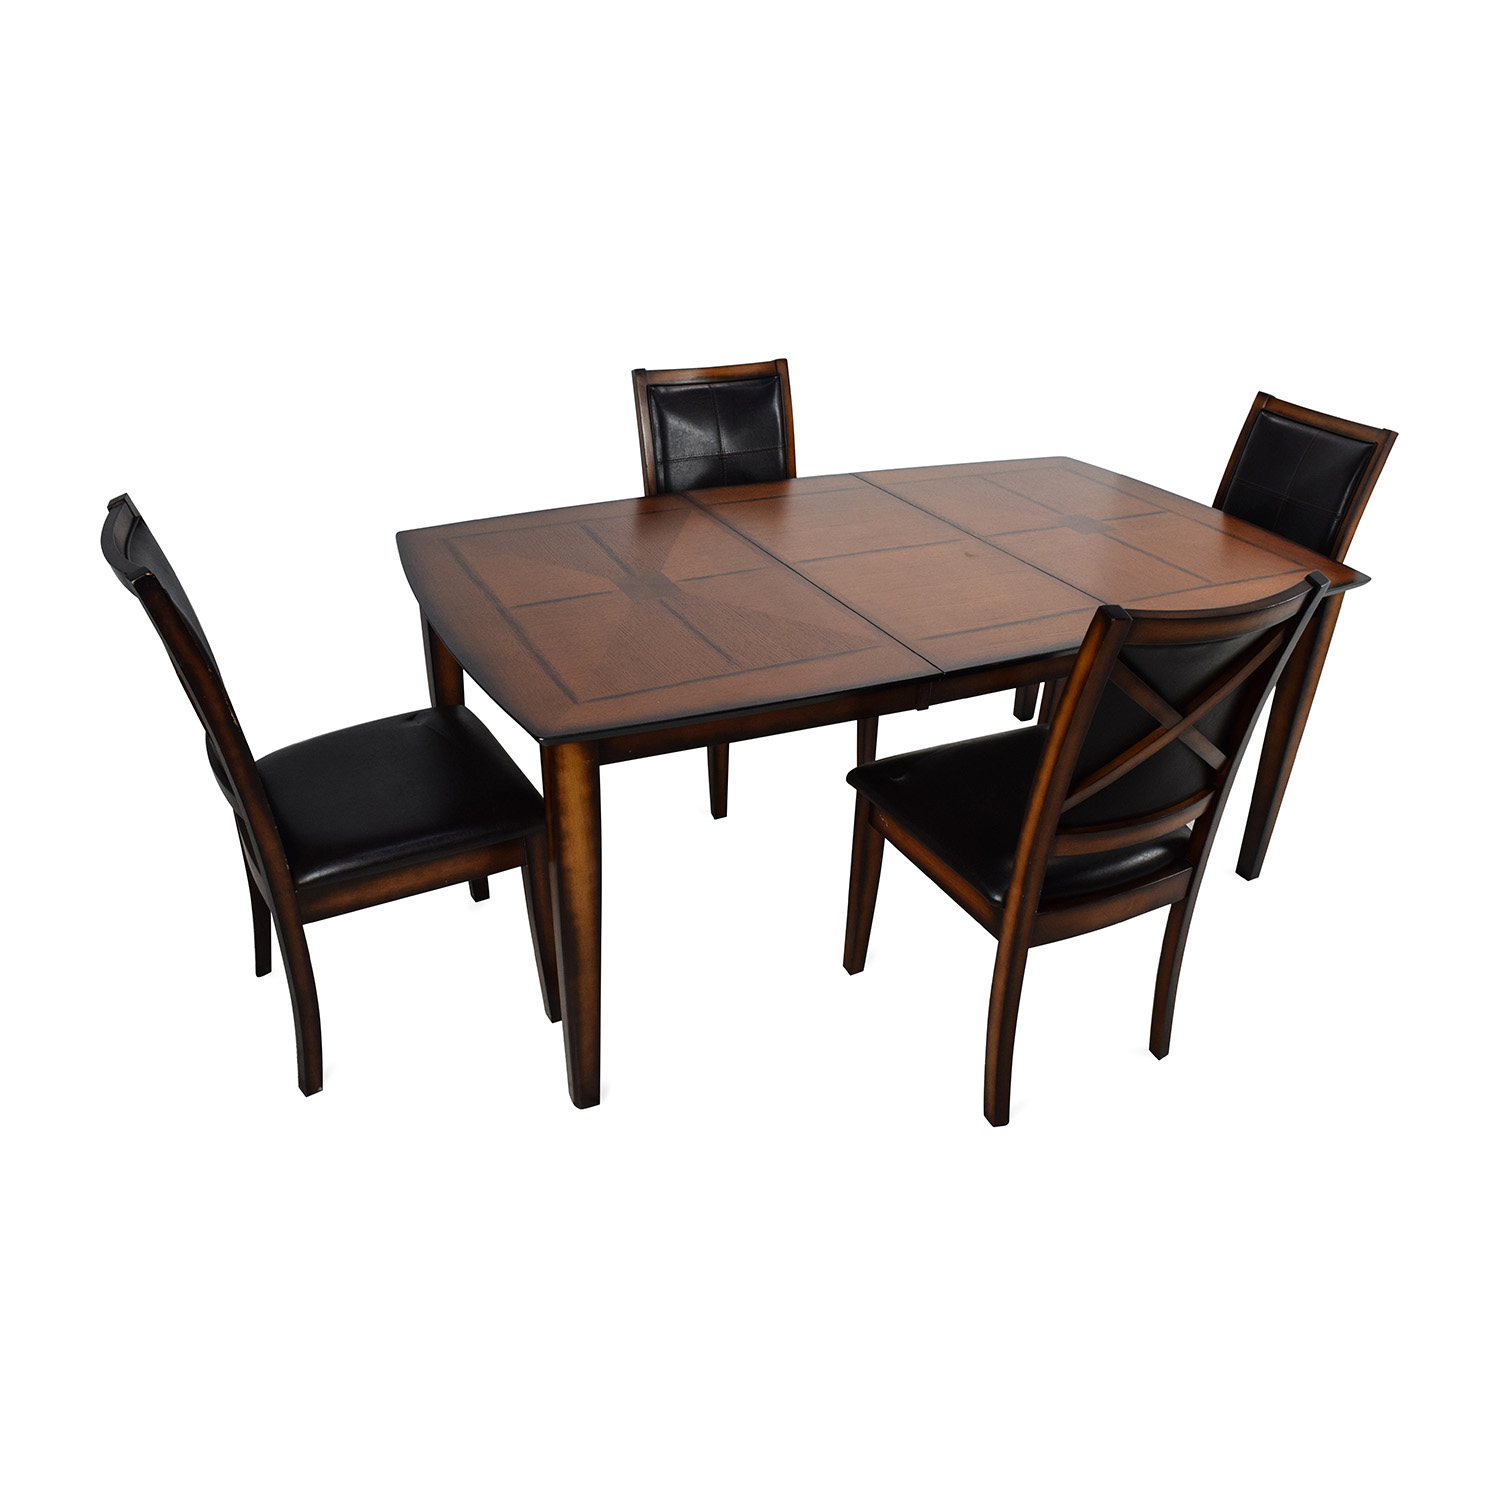 59% OFF   Raymour U0026 Flanigan Raymour U0026 Flanigan Denver 5 Piece Extendable  Dining Set / Tables